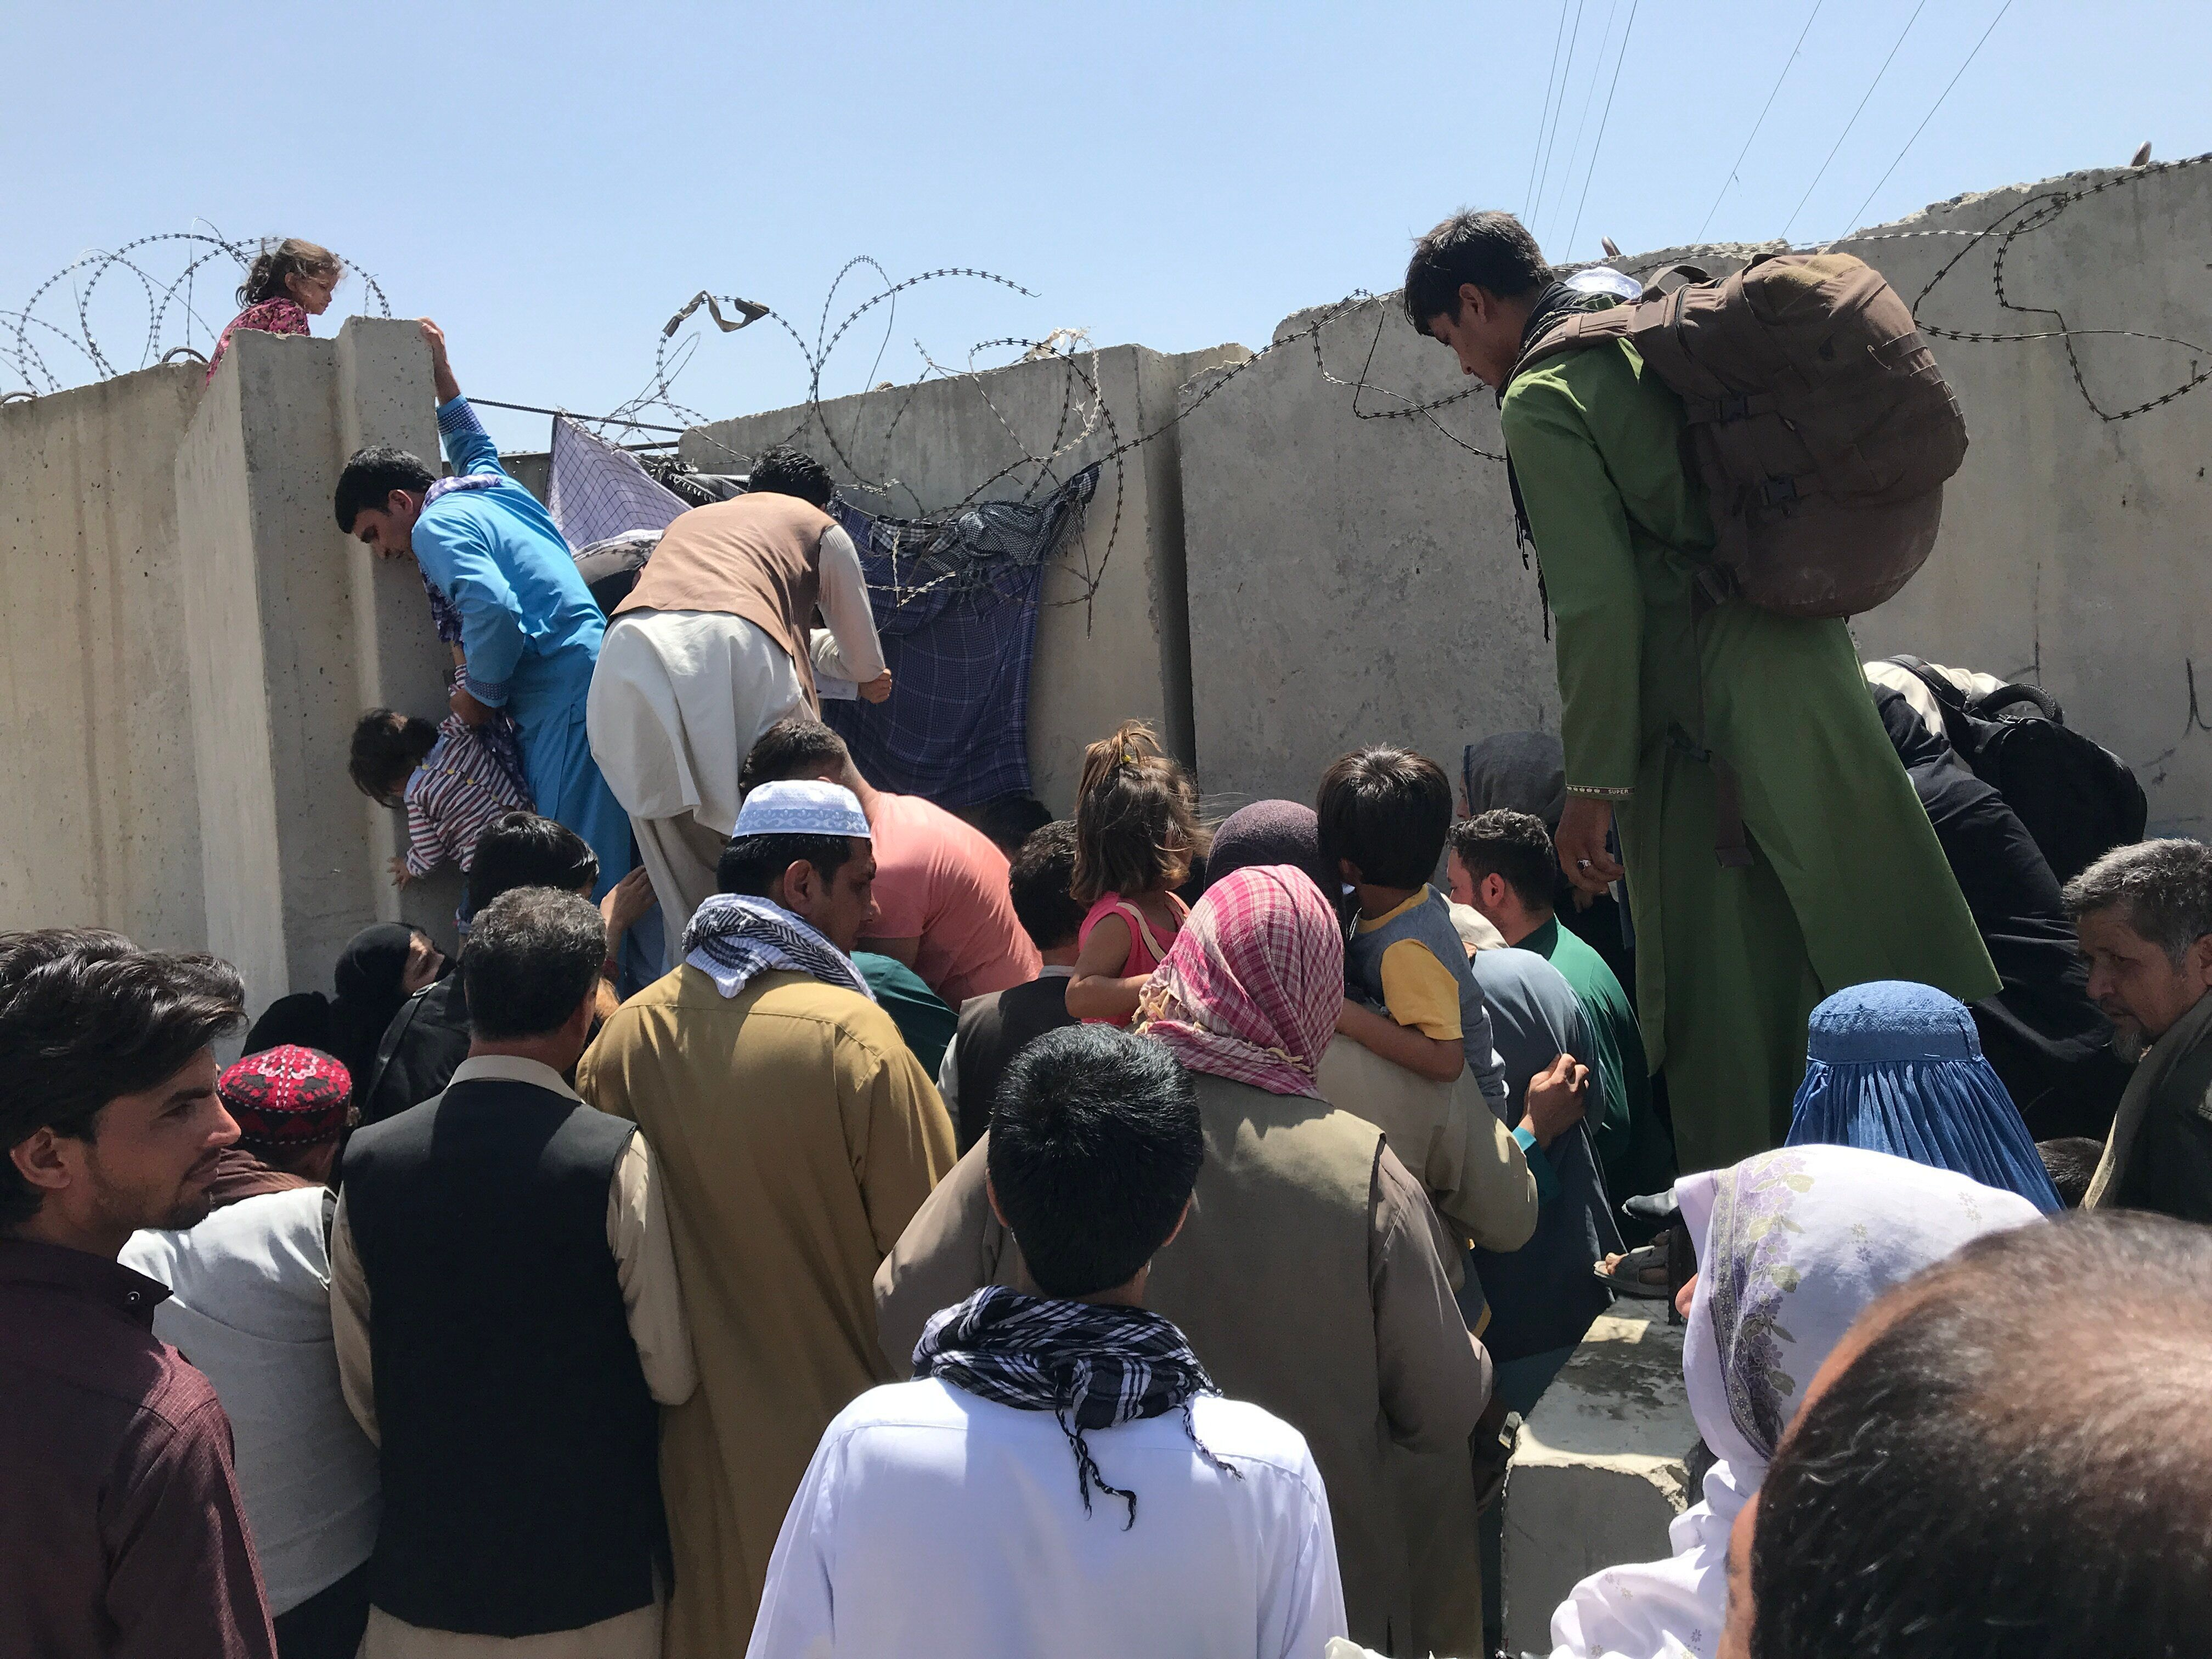 People struggle to cross the boundary wall of Kabul's Hamid Karzai International Airport on Monday to flee the country.